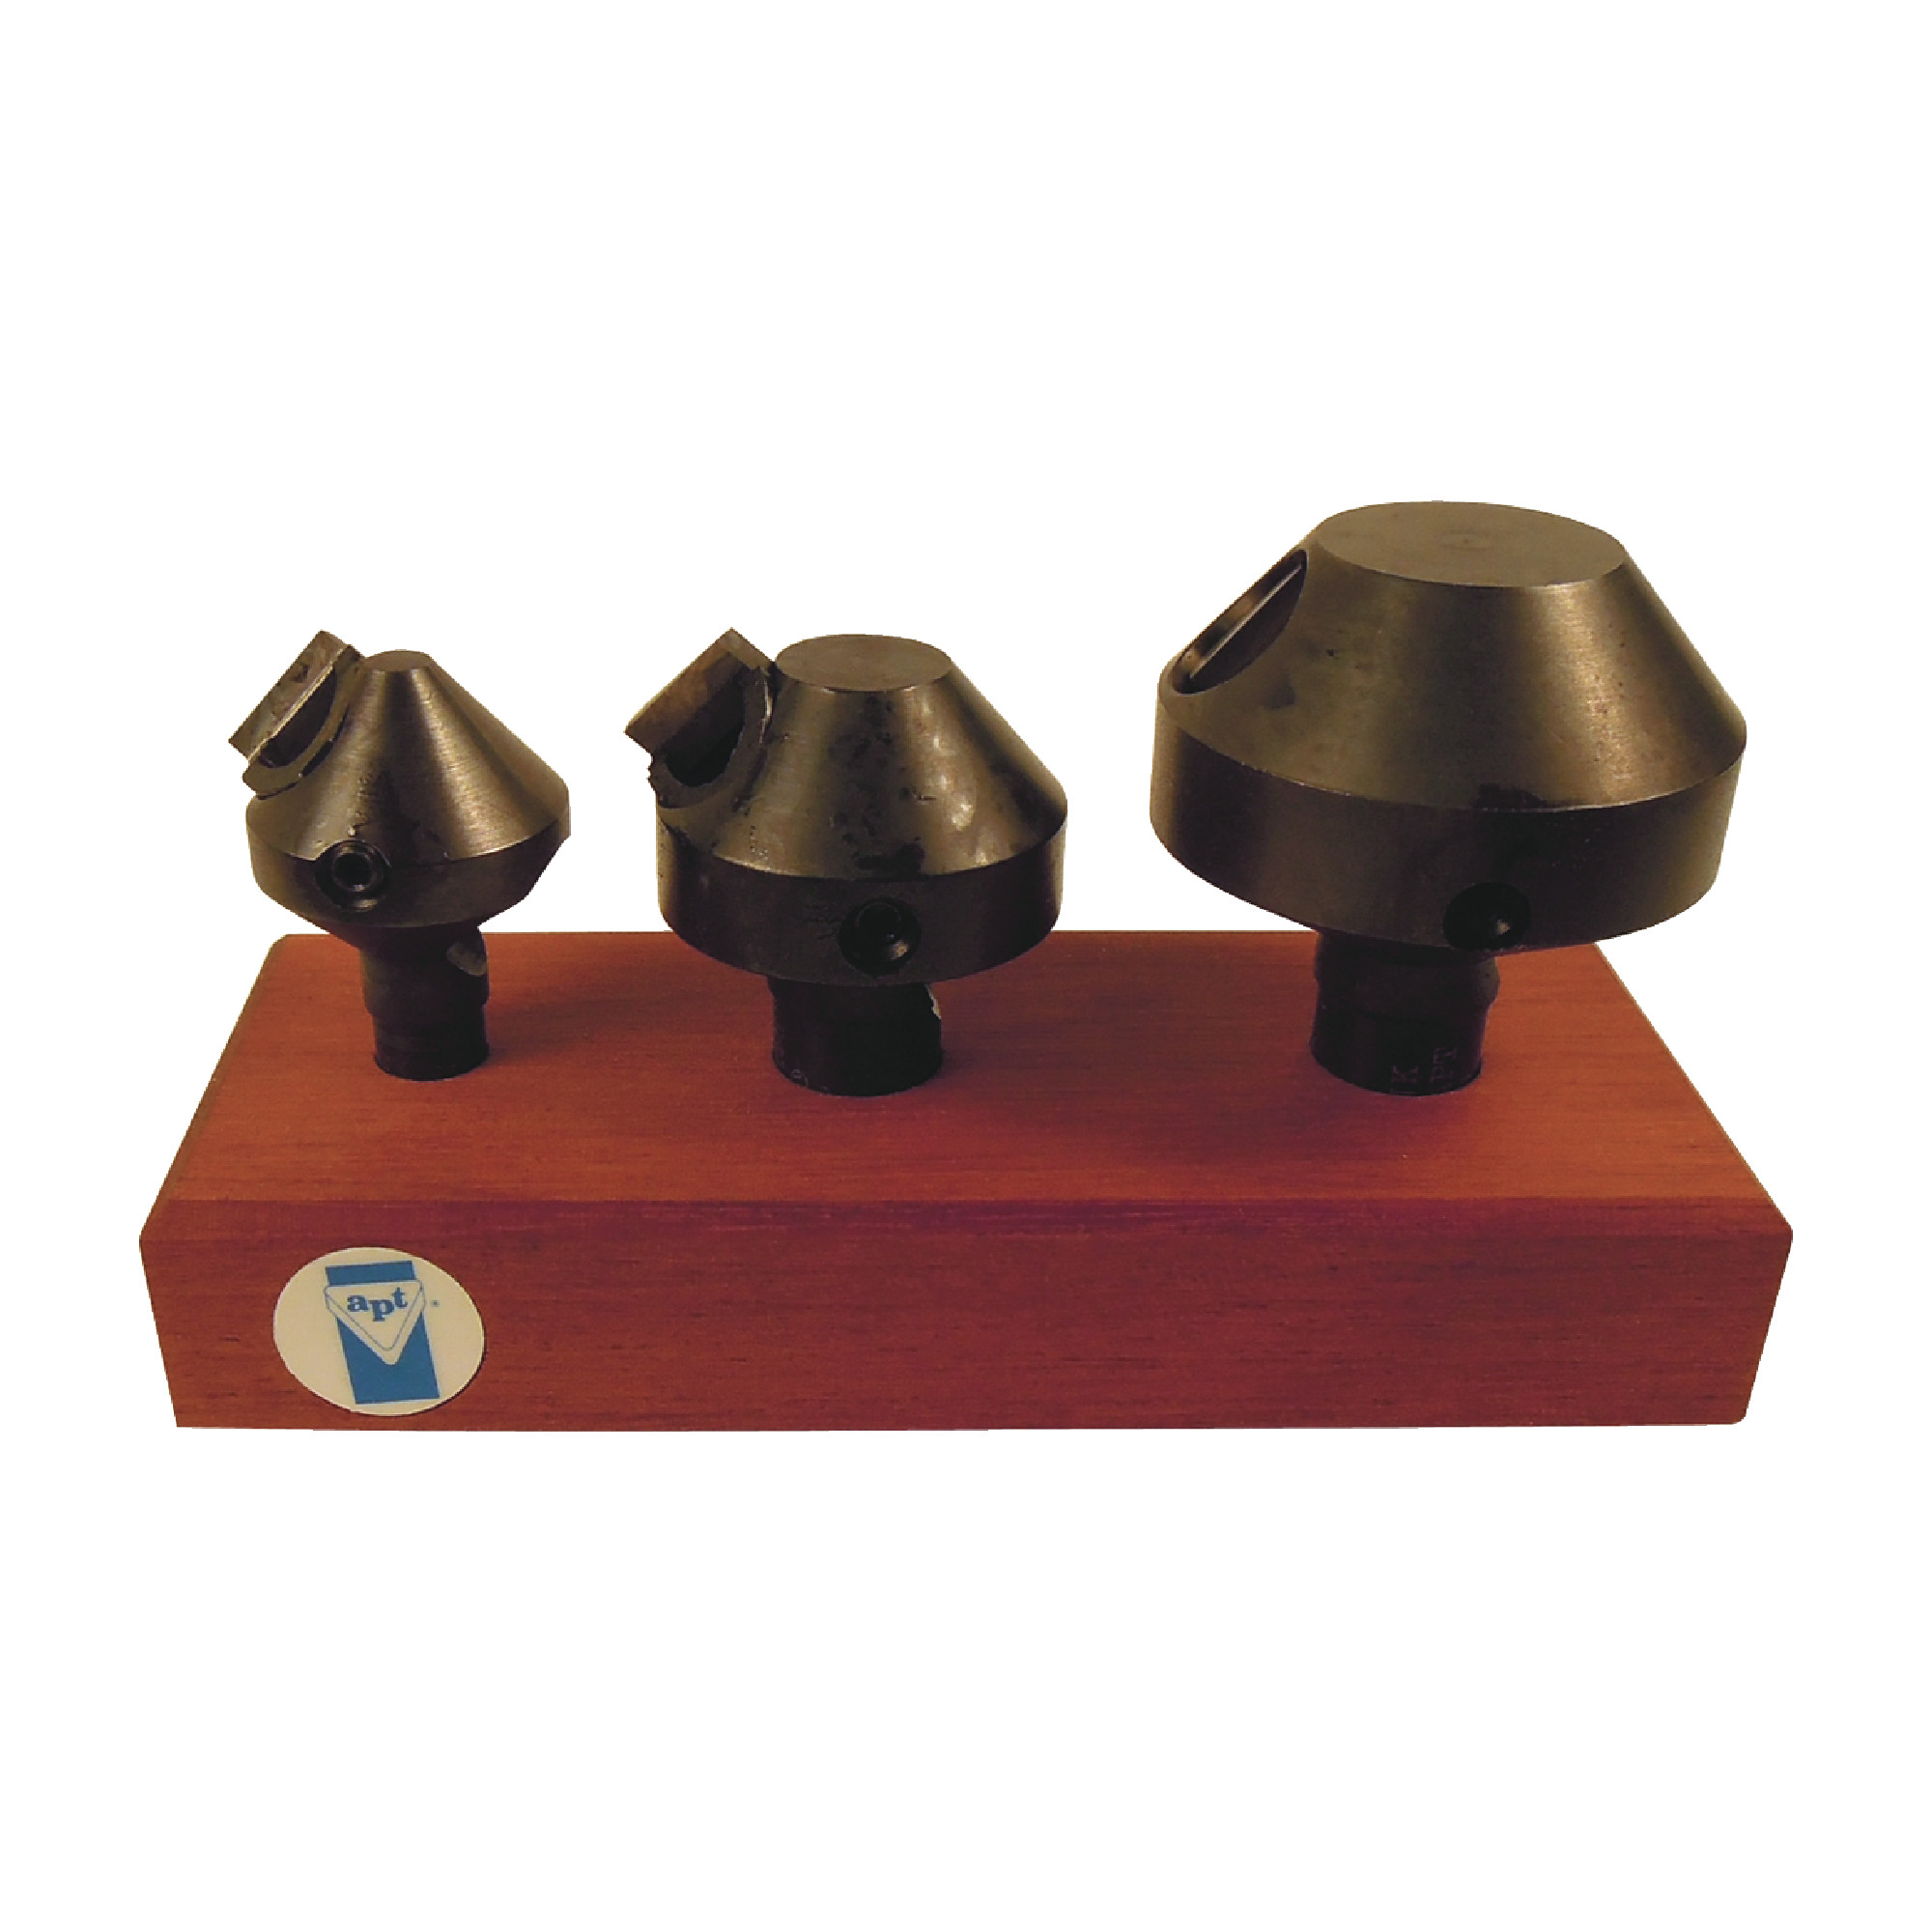 APT - 548SC8 - 82° 3 Piece Countersink Set / Comes Loaded with Carbide Inserts